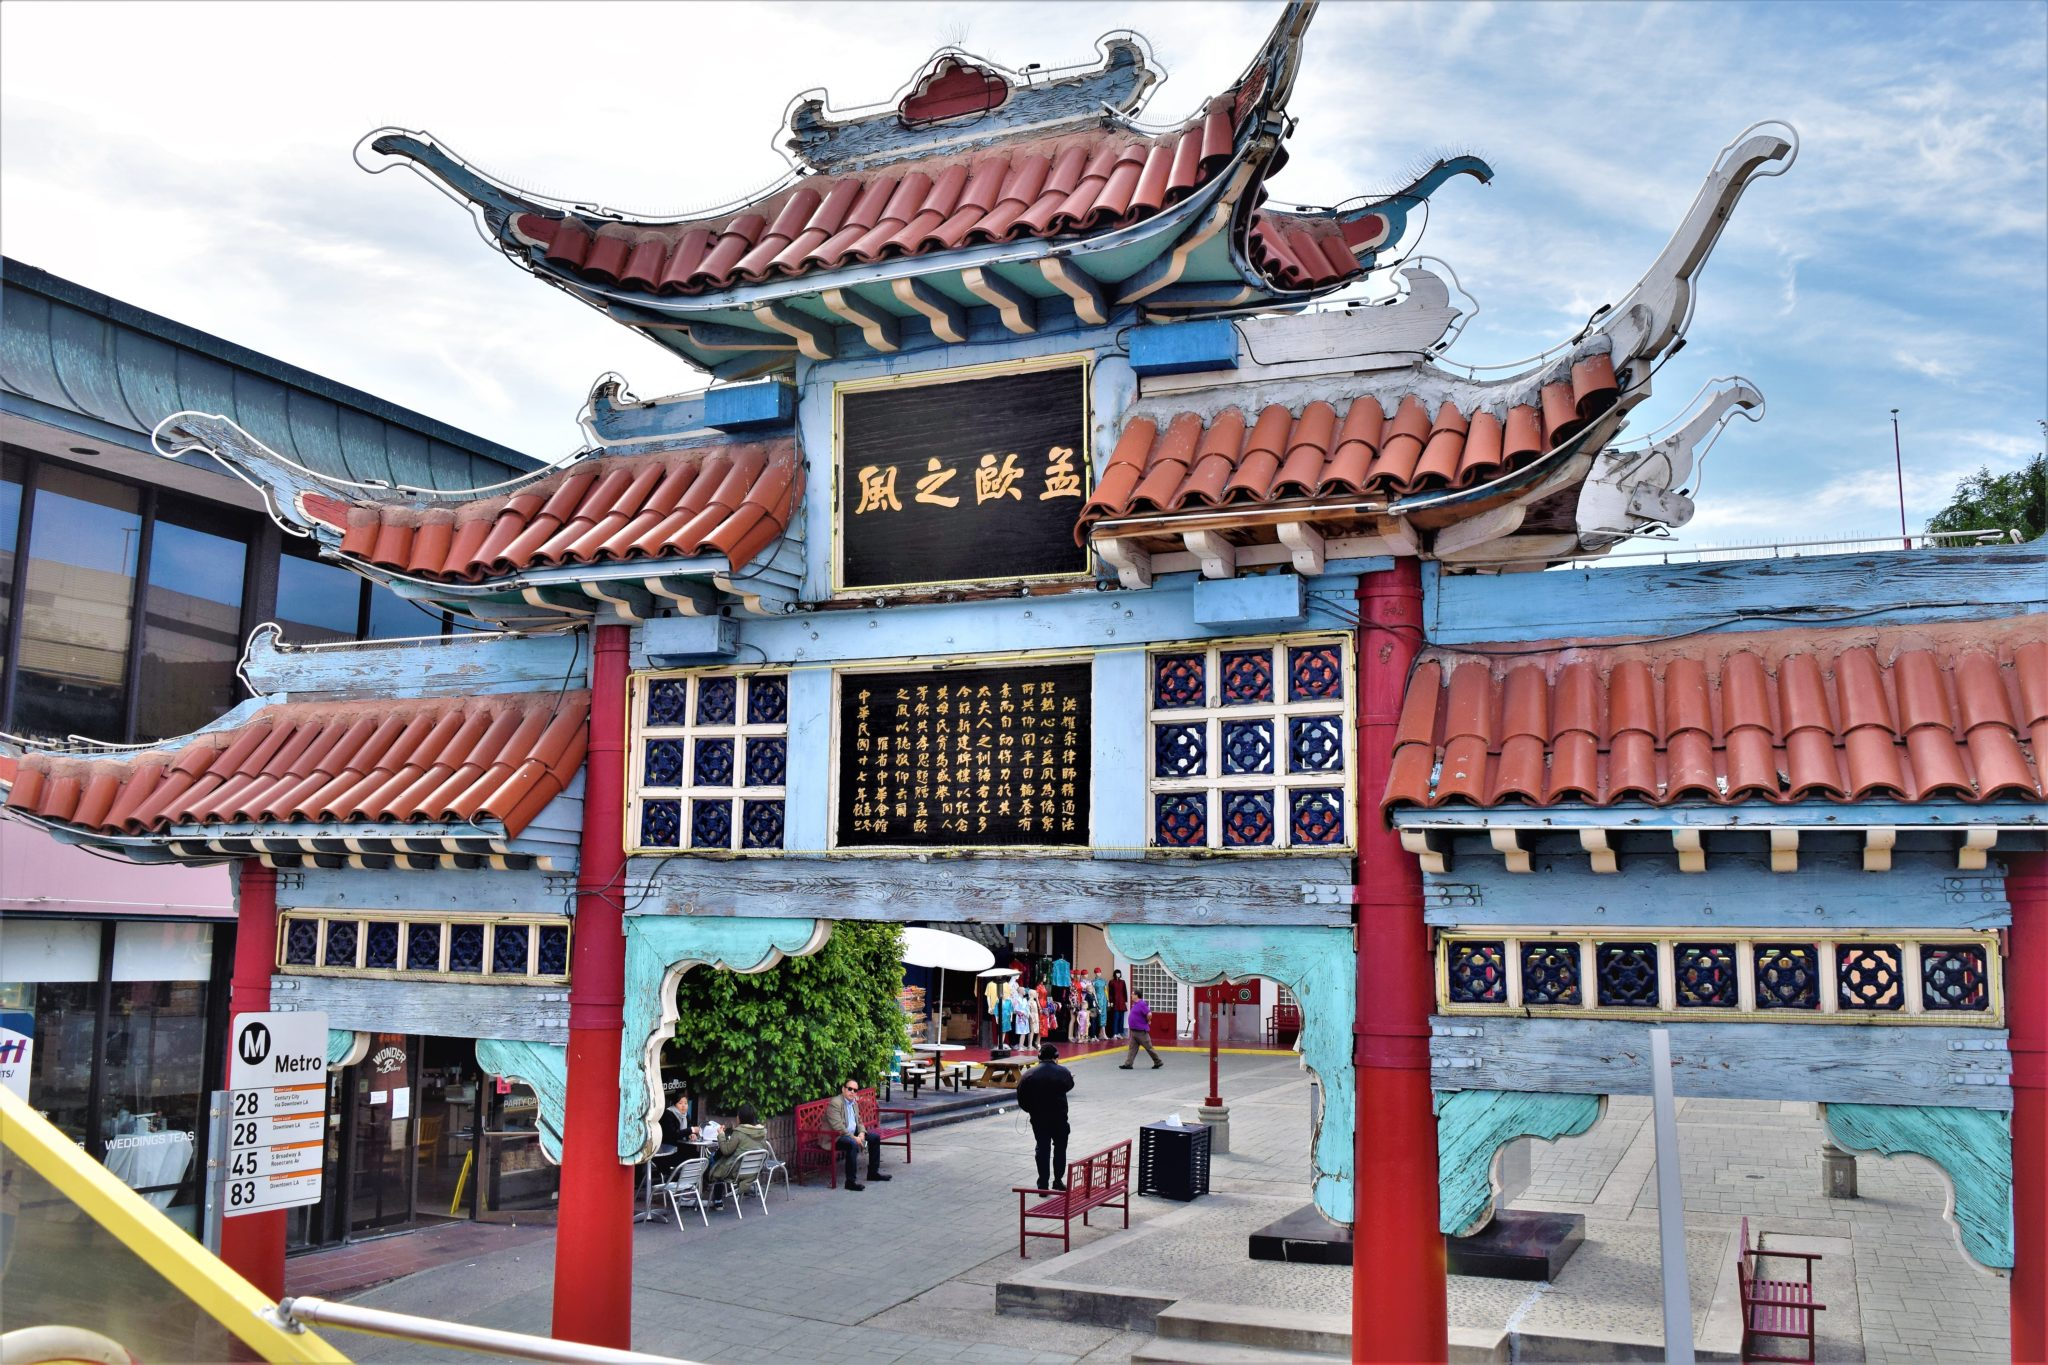 Chinatown los angeles, free things to do in the city